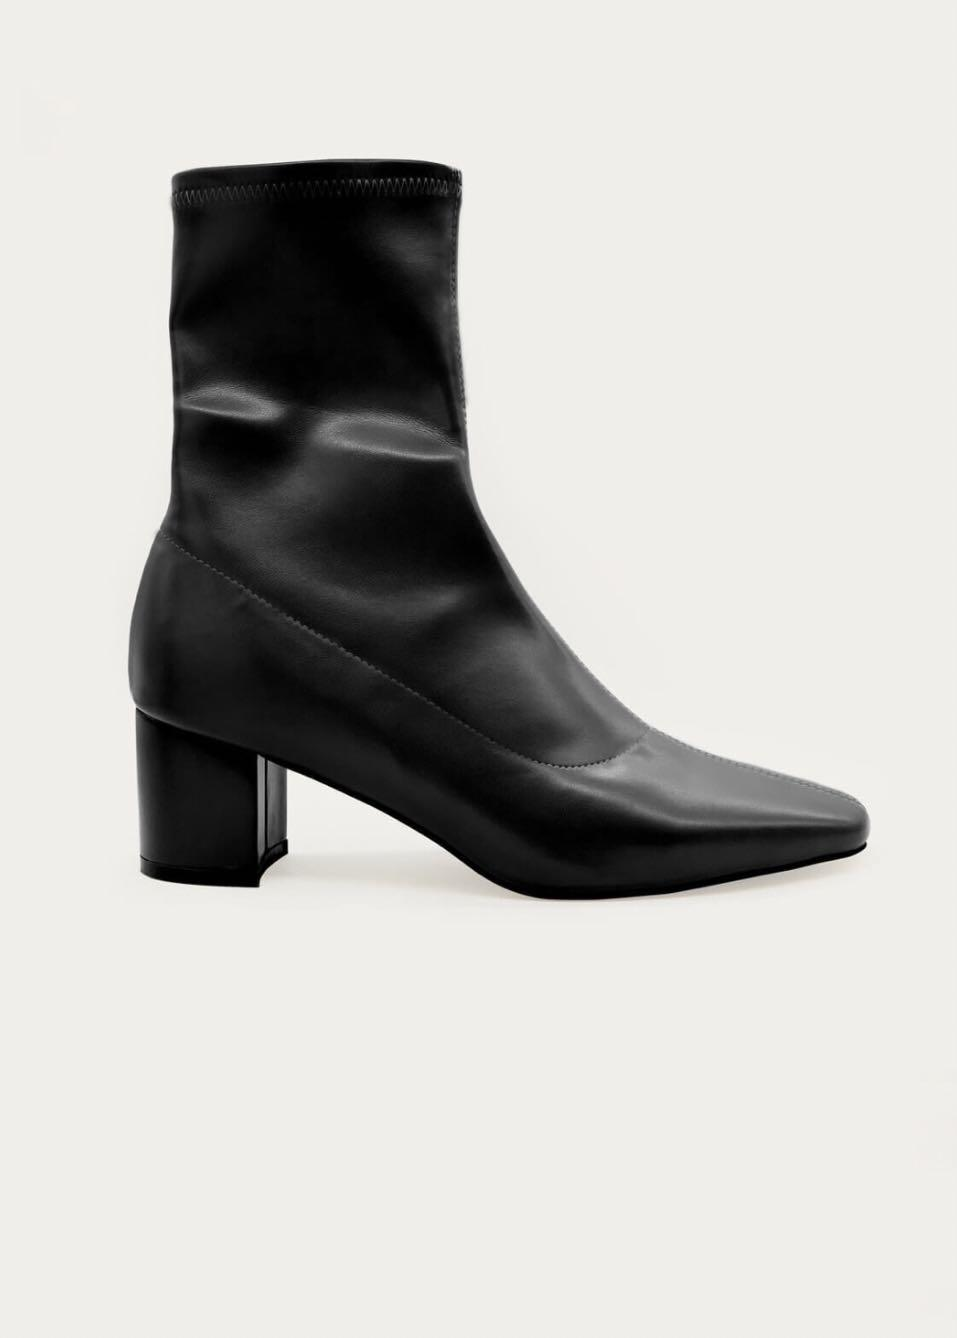 Oak and fort black leather sock boots